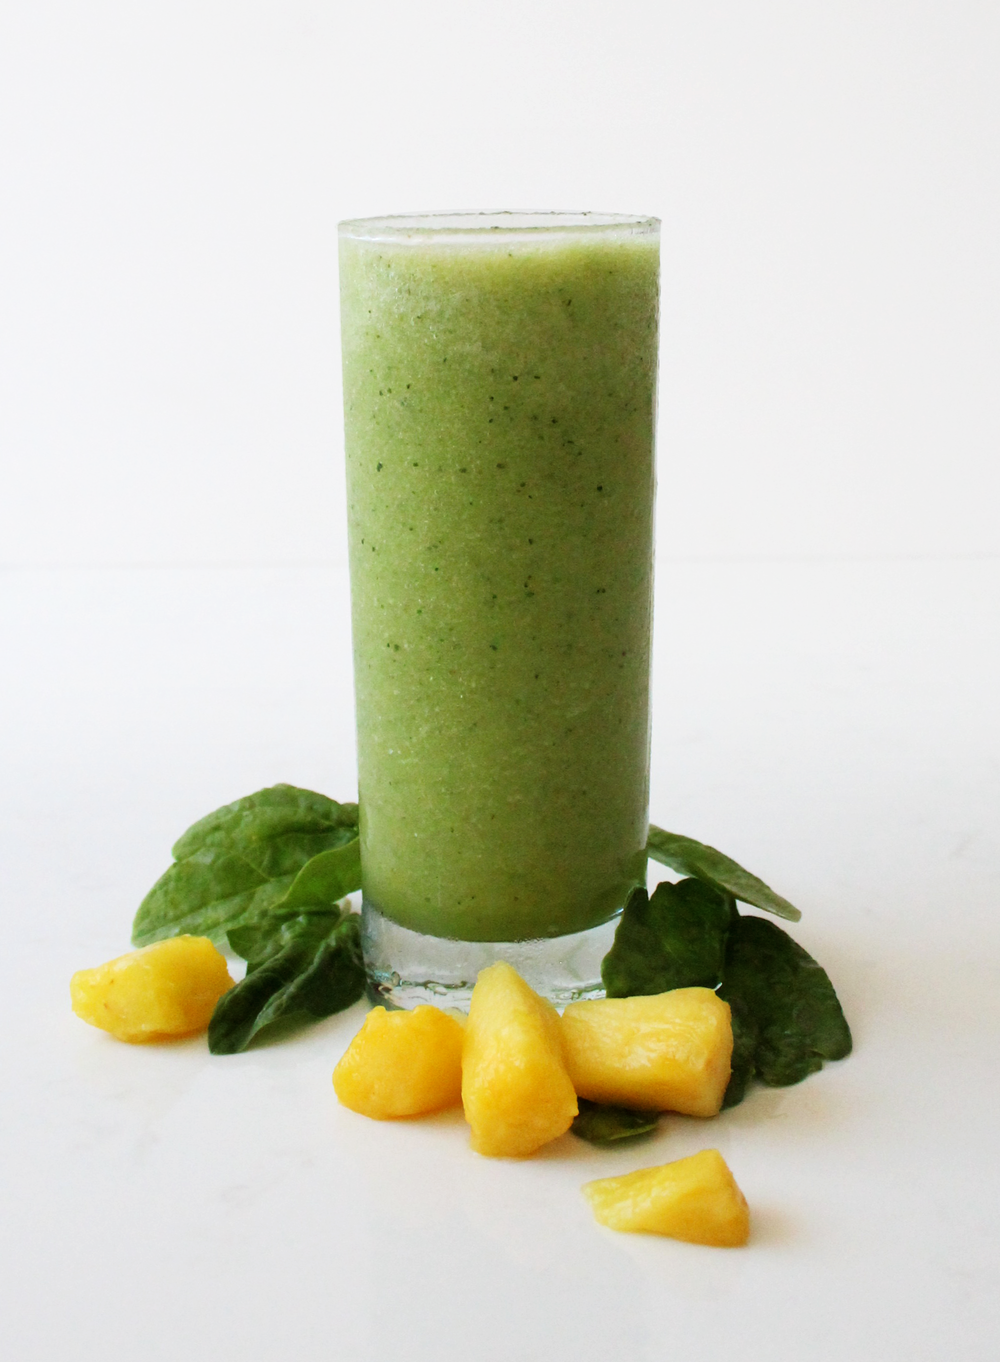 Green Tropical Get your greens with this tropical infused smoothie! Generous amounts of spinach are blended with pineapple, coconut milk, ginger, hemp seeds, and lime to make this healthy and deliciously flavored drink reminiscent of a tropical getaway. --- spinach, pineapple, banana, hemp seed, coconut milk, cold-pressed pineapple juice, cold-pressed ginger juice, lime juice